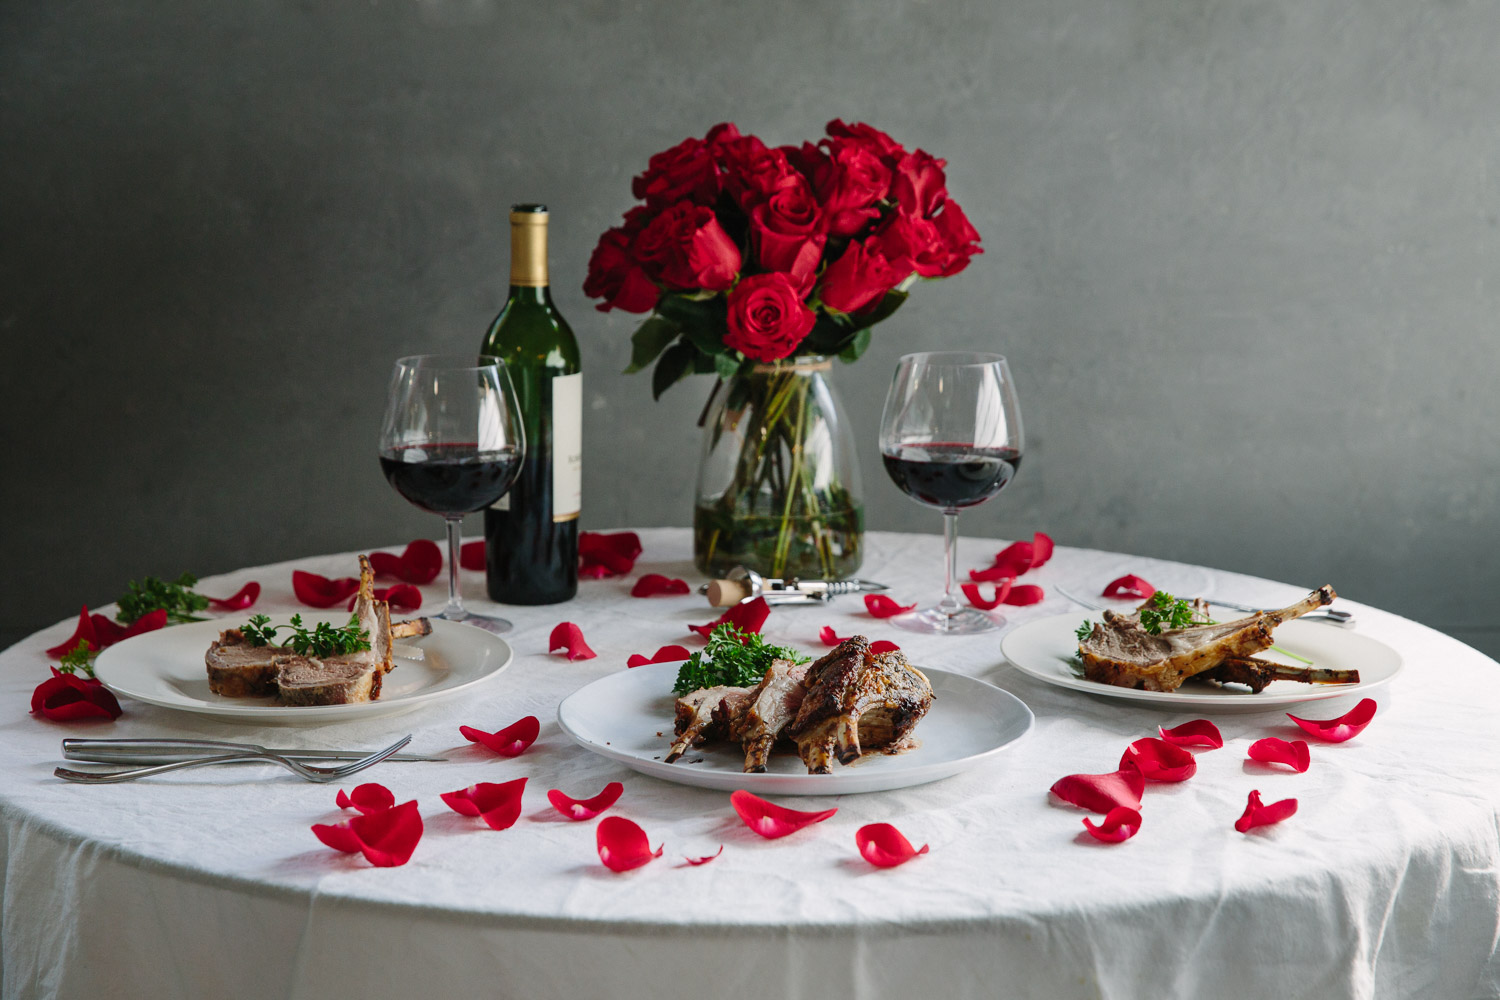 A Romantic Dinner for two 2